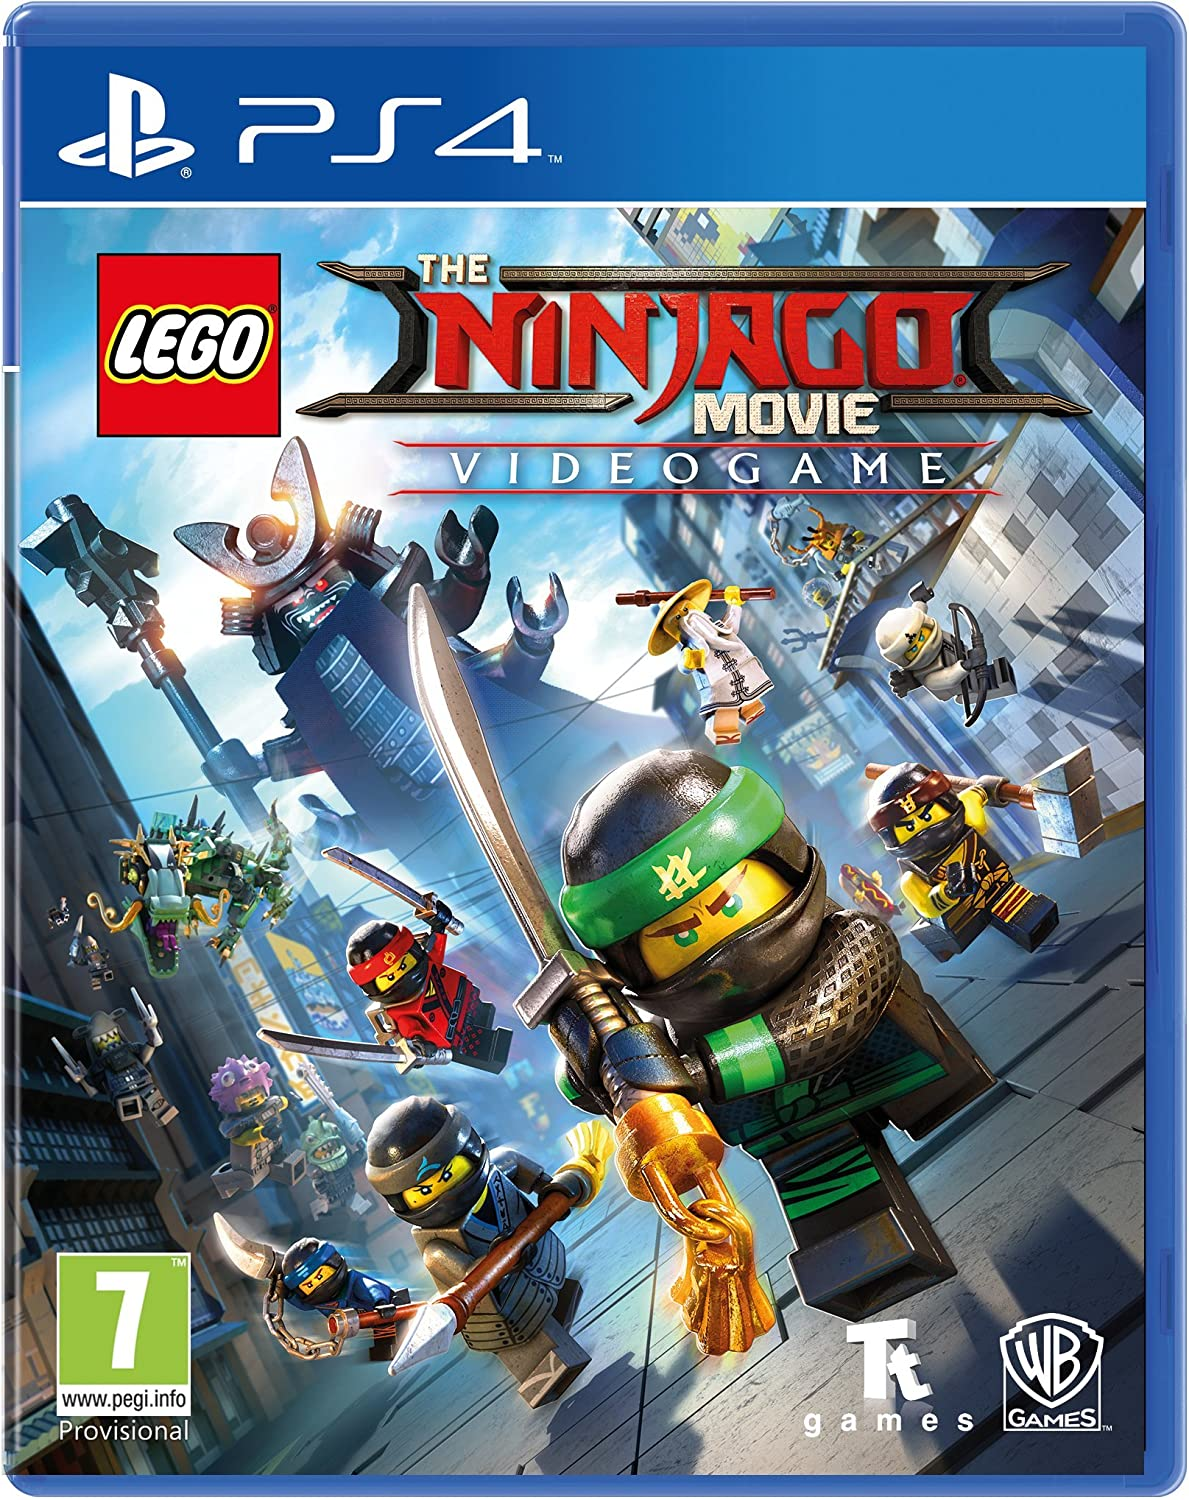 Lego Ninjago Movie Video Game Playstation 4